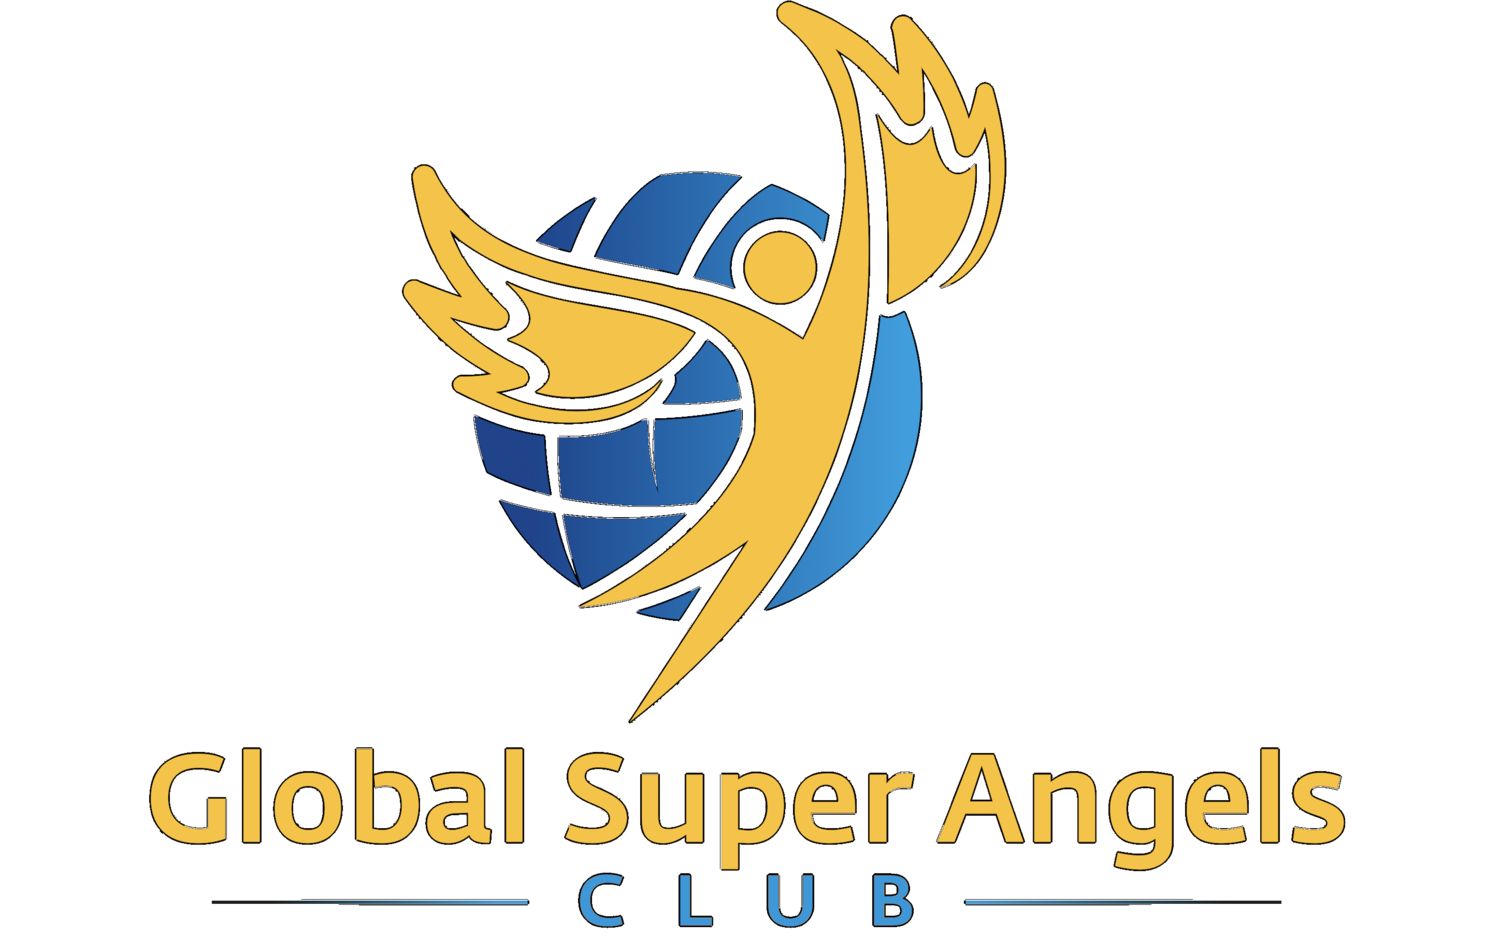 Global Super Angels Club